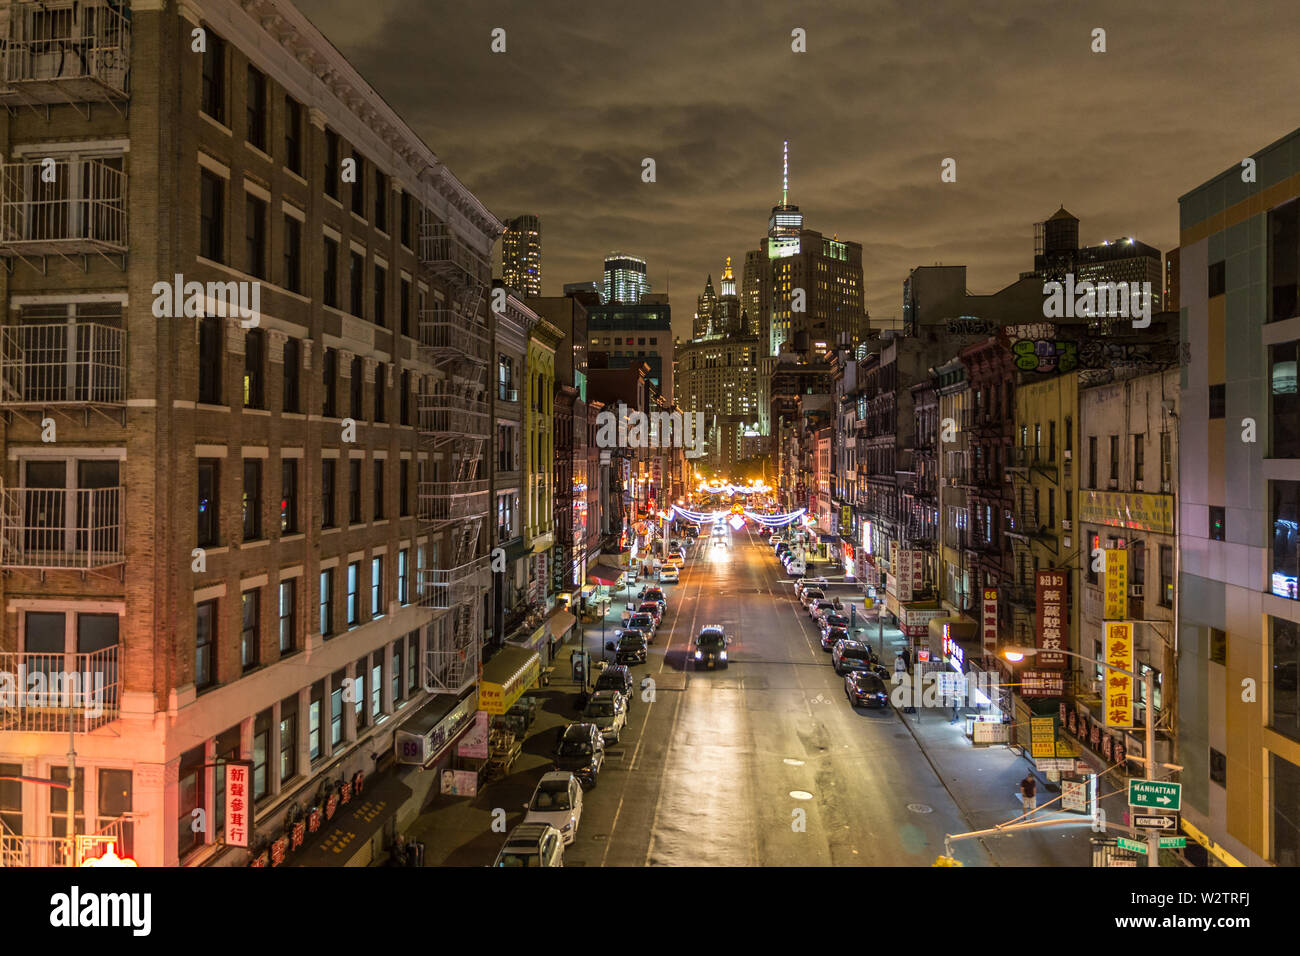 Manhattan bridge view over Chinatown at night, lower Manhattan in the background. New York City, United States of America. - Stock Image